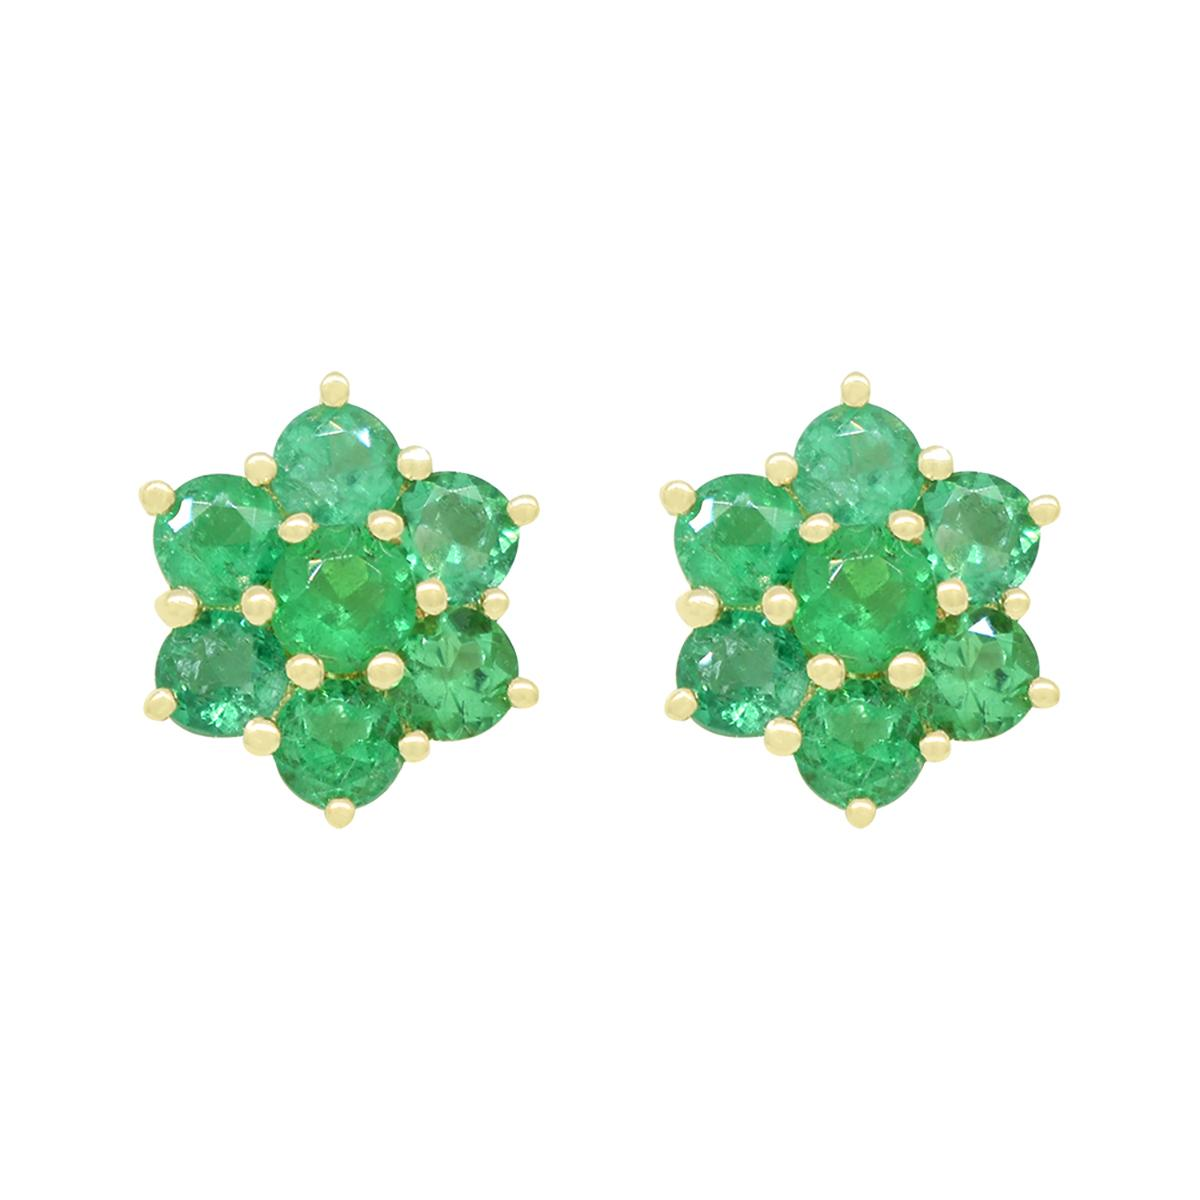 emerald-earrings-in-18k-yellow-gold-cluster-style